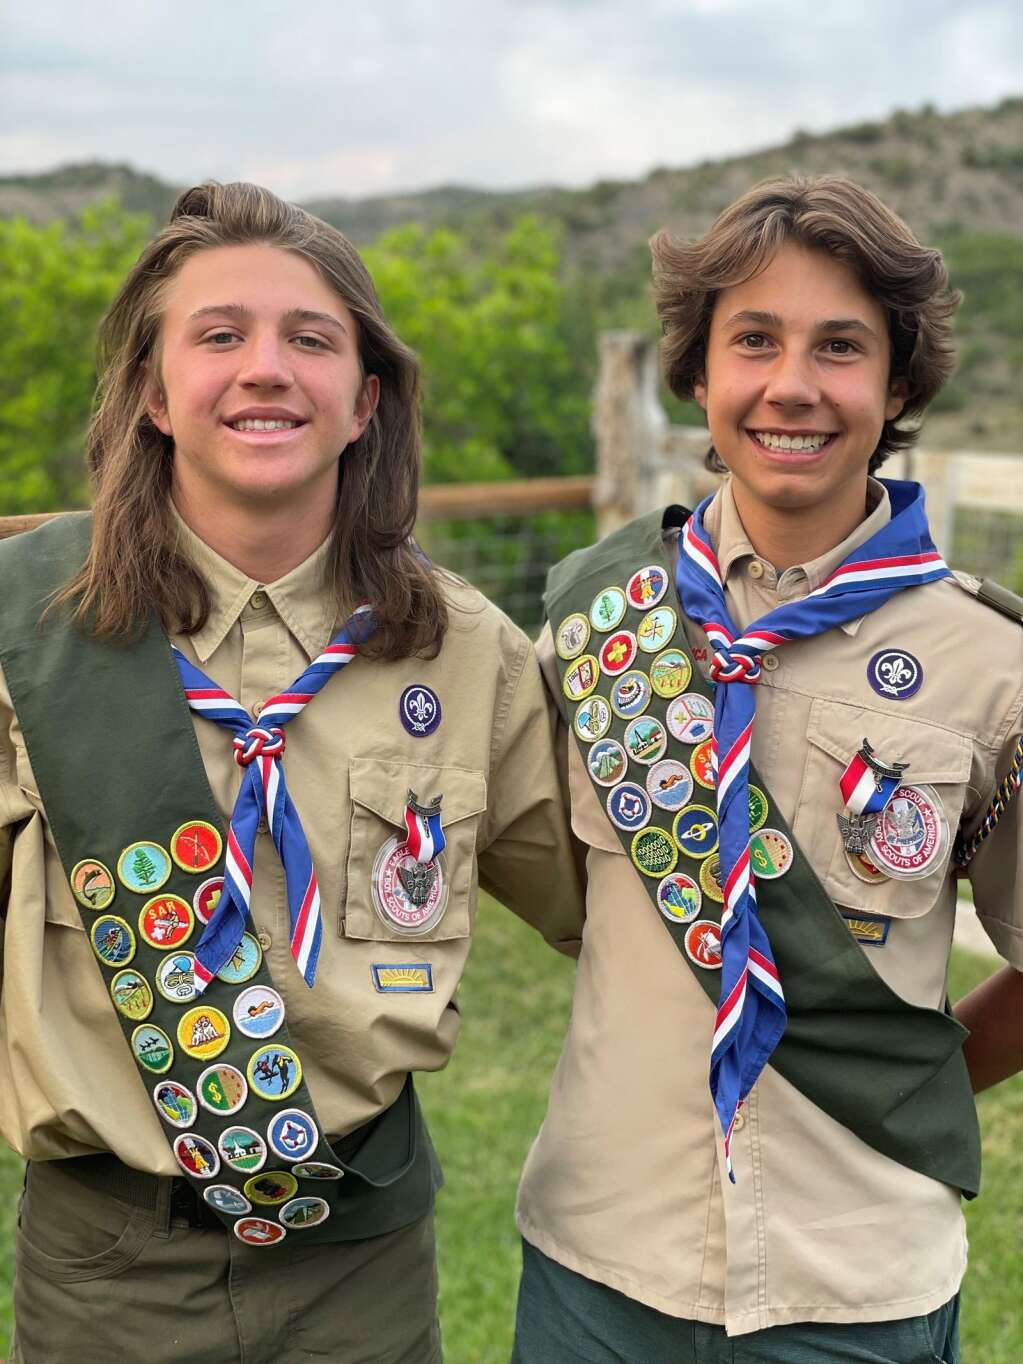 Aspen Boy Scout Troop 201 is proud to announce that Nate Balko and Nate Thomas have earned the rank of Eagle Scout. The two young men started scouting 11 years ago and through their hard work and diligence, they have attained the highest honor in scouting. Since it inception in 1911, only 4% of Boy Scouts have attained this rank. (Courtesy photo)